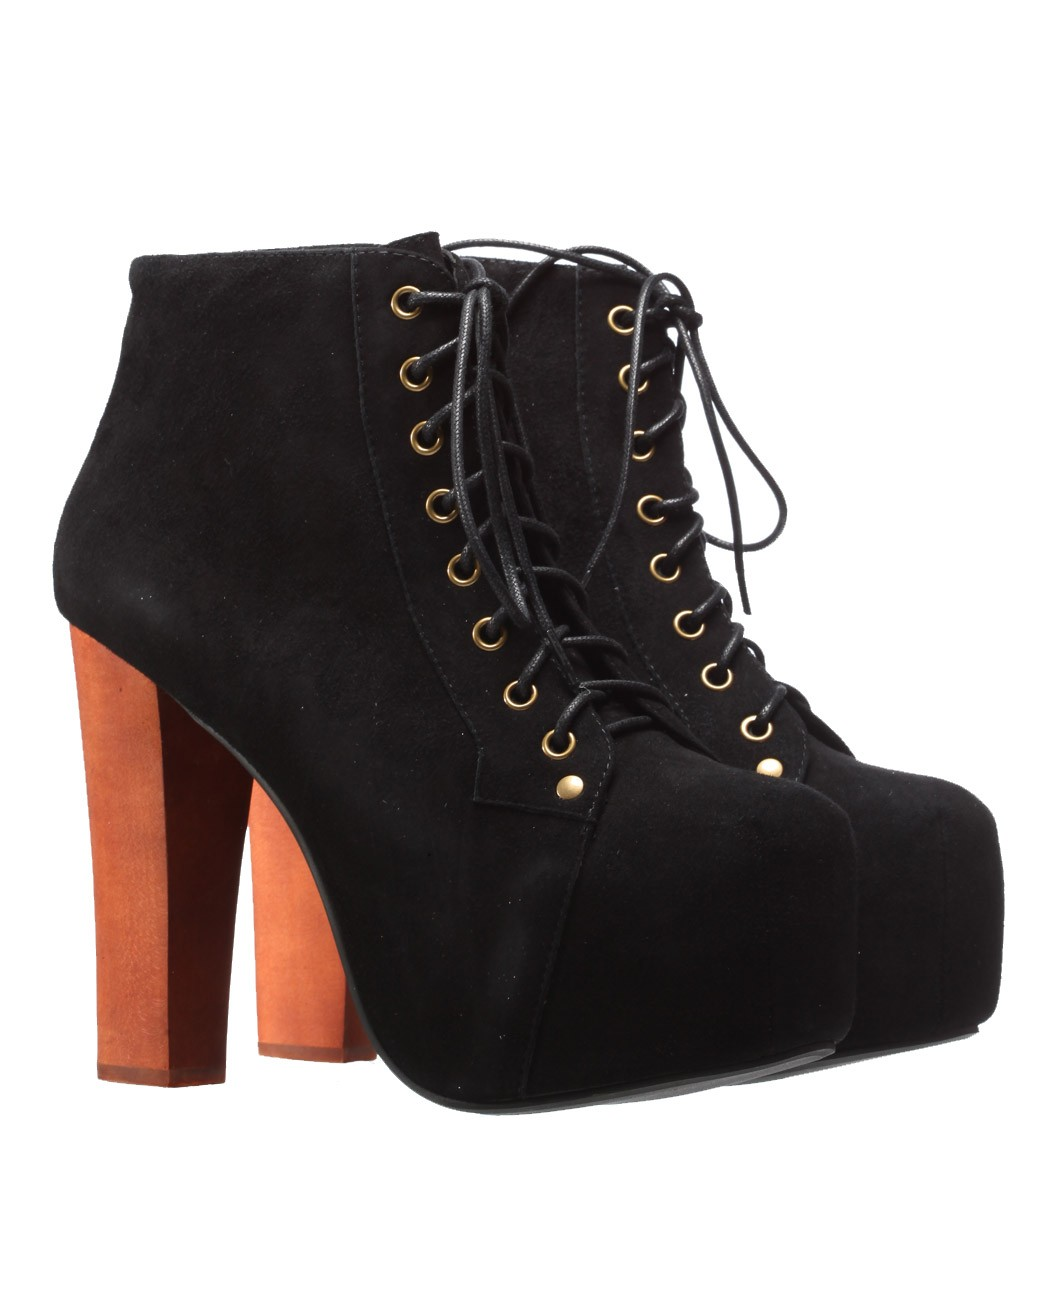 jeffrey campbell lita high heel platform suede boot black. Black Bedroom Furniture Sets. Home Design Ideas